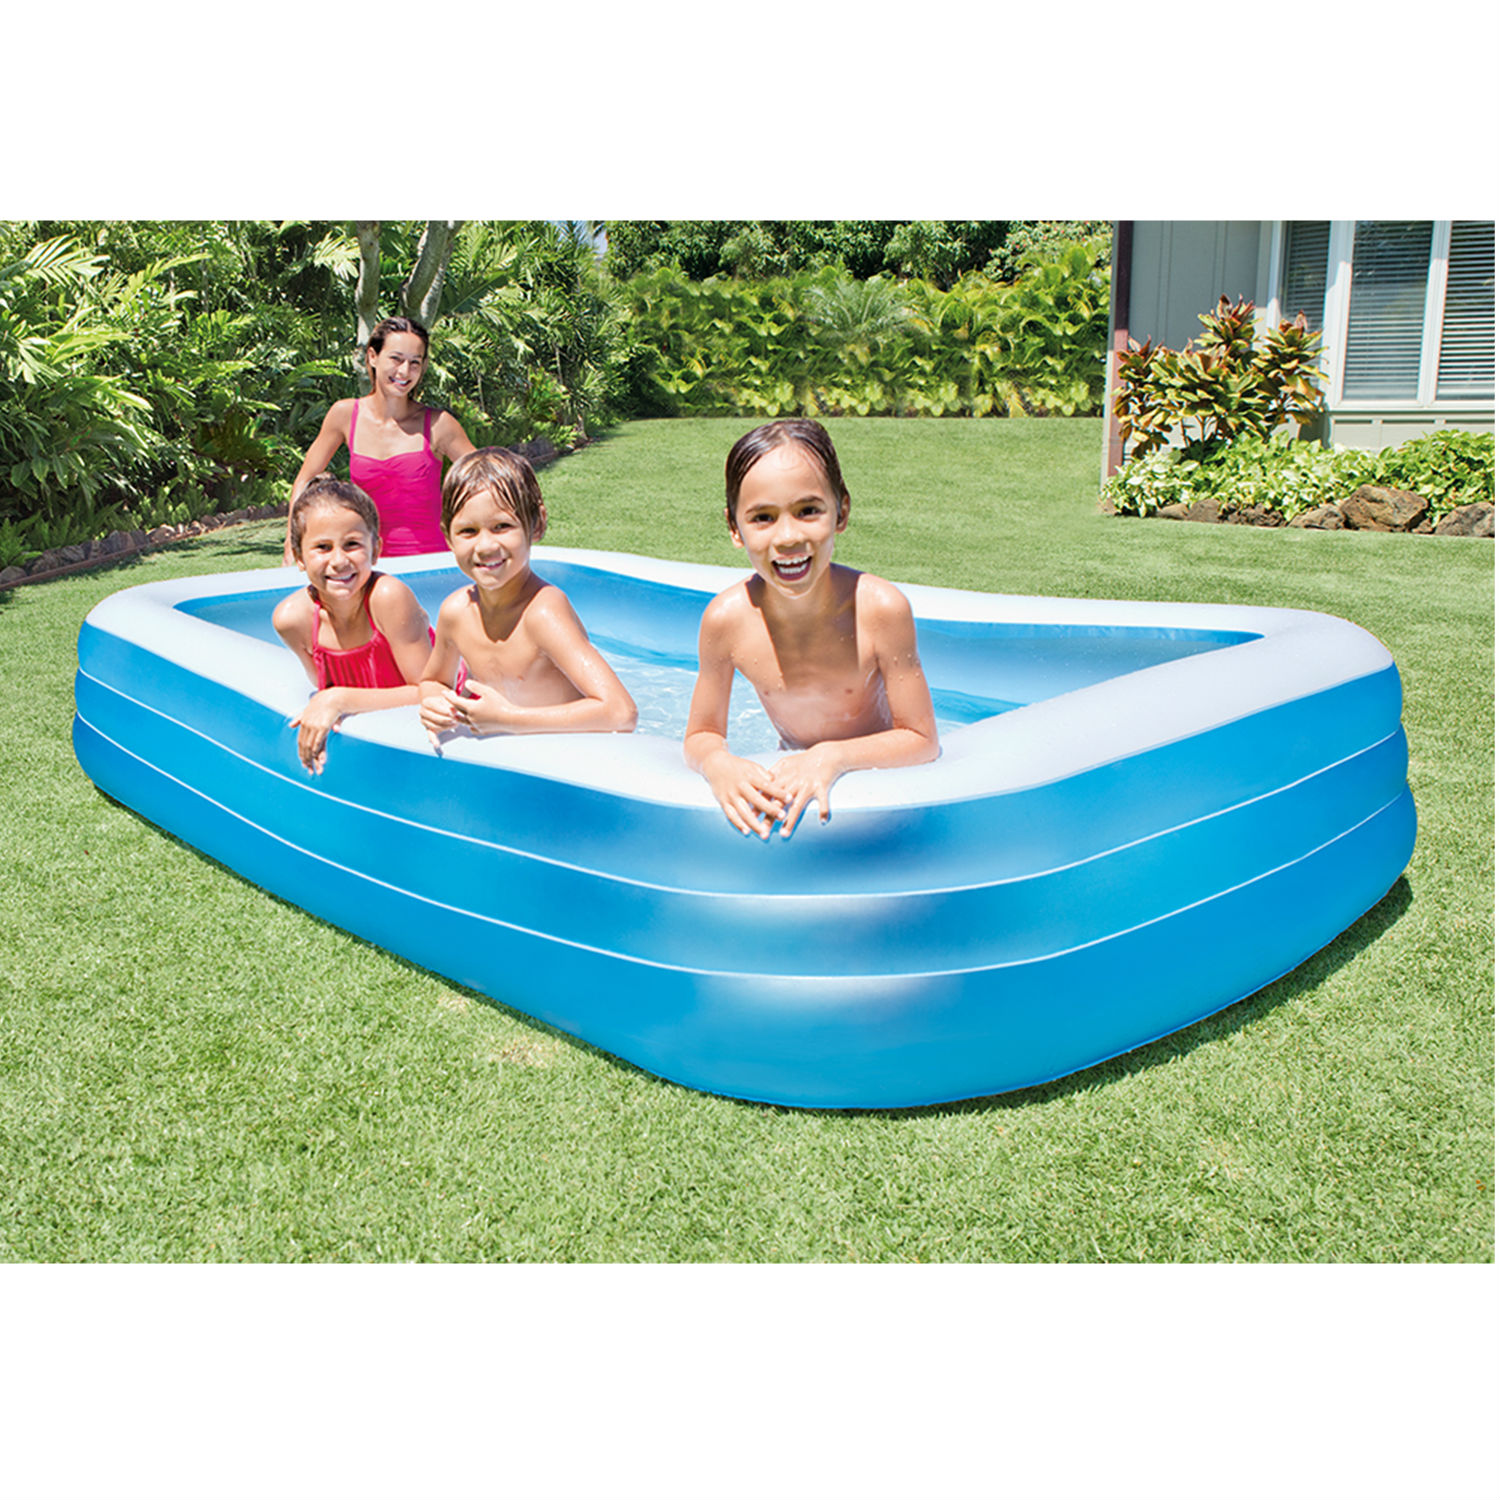 "Intex Inflatable Swim Center Family Lounge Pool, 120"" x 72"" x 22"""